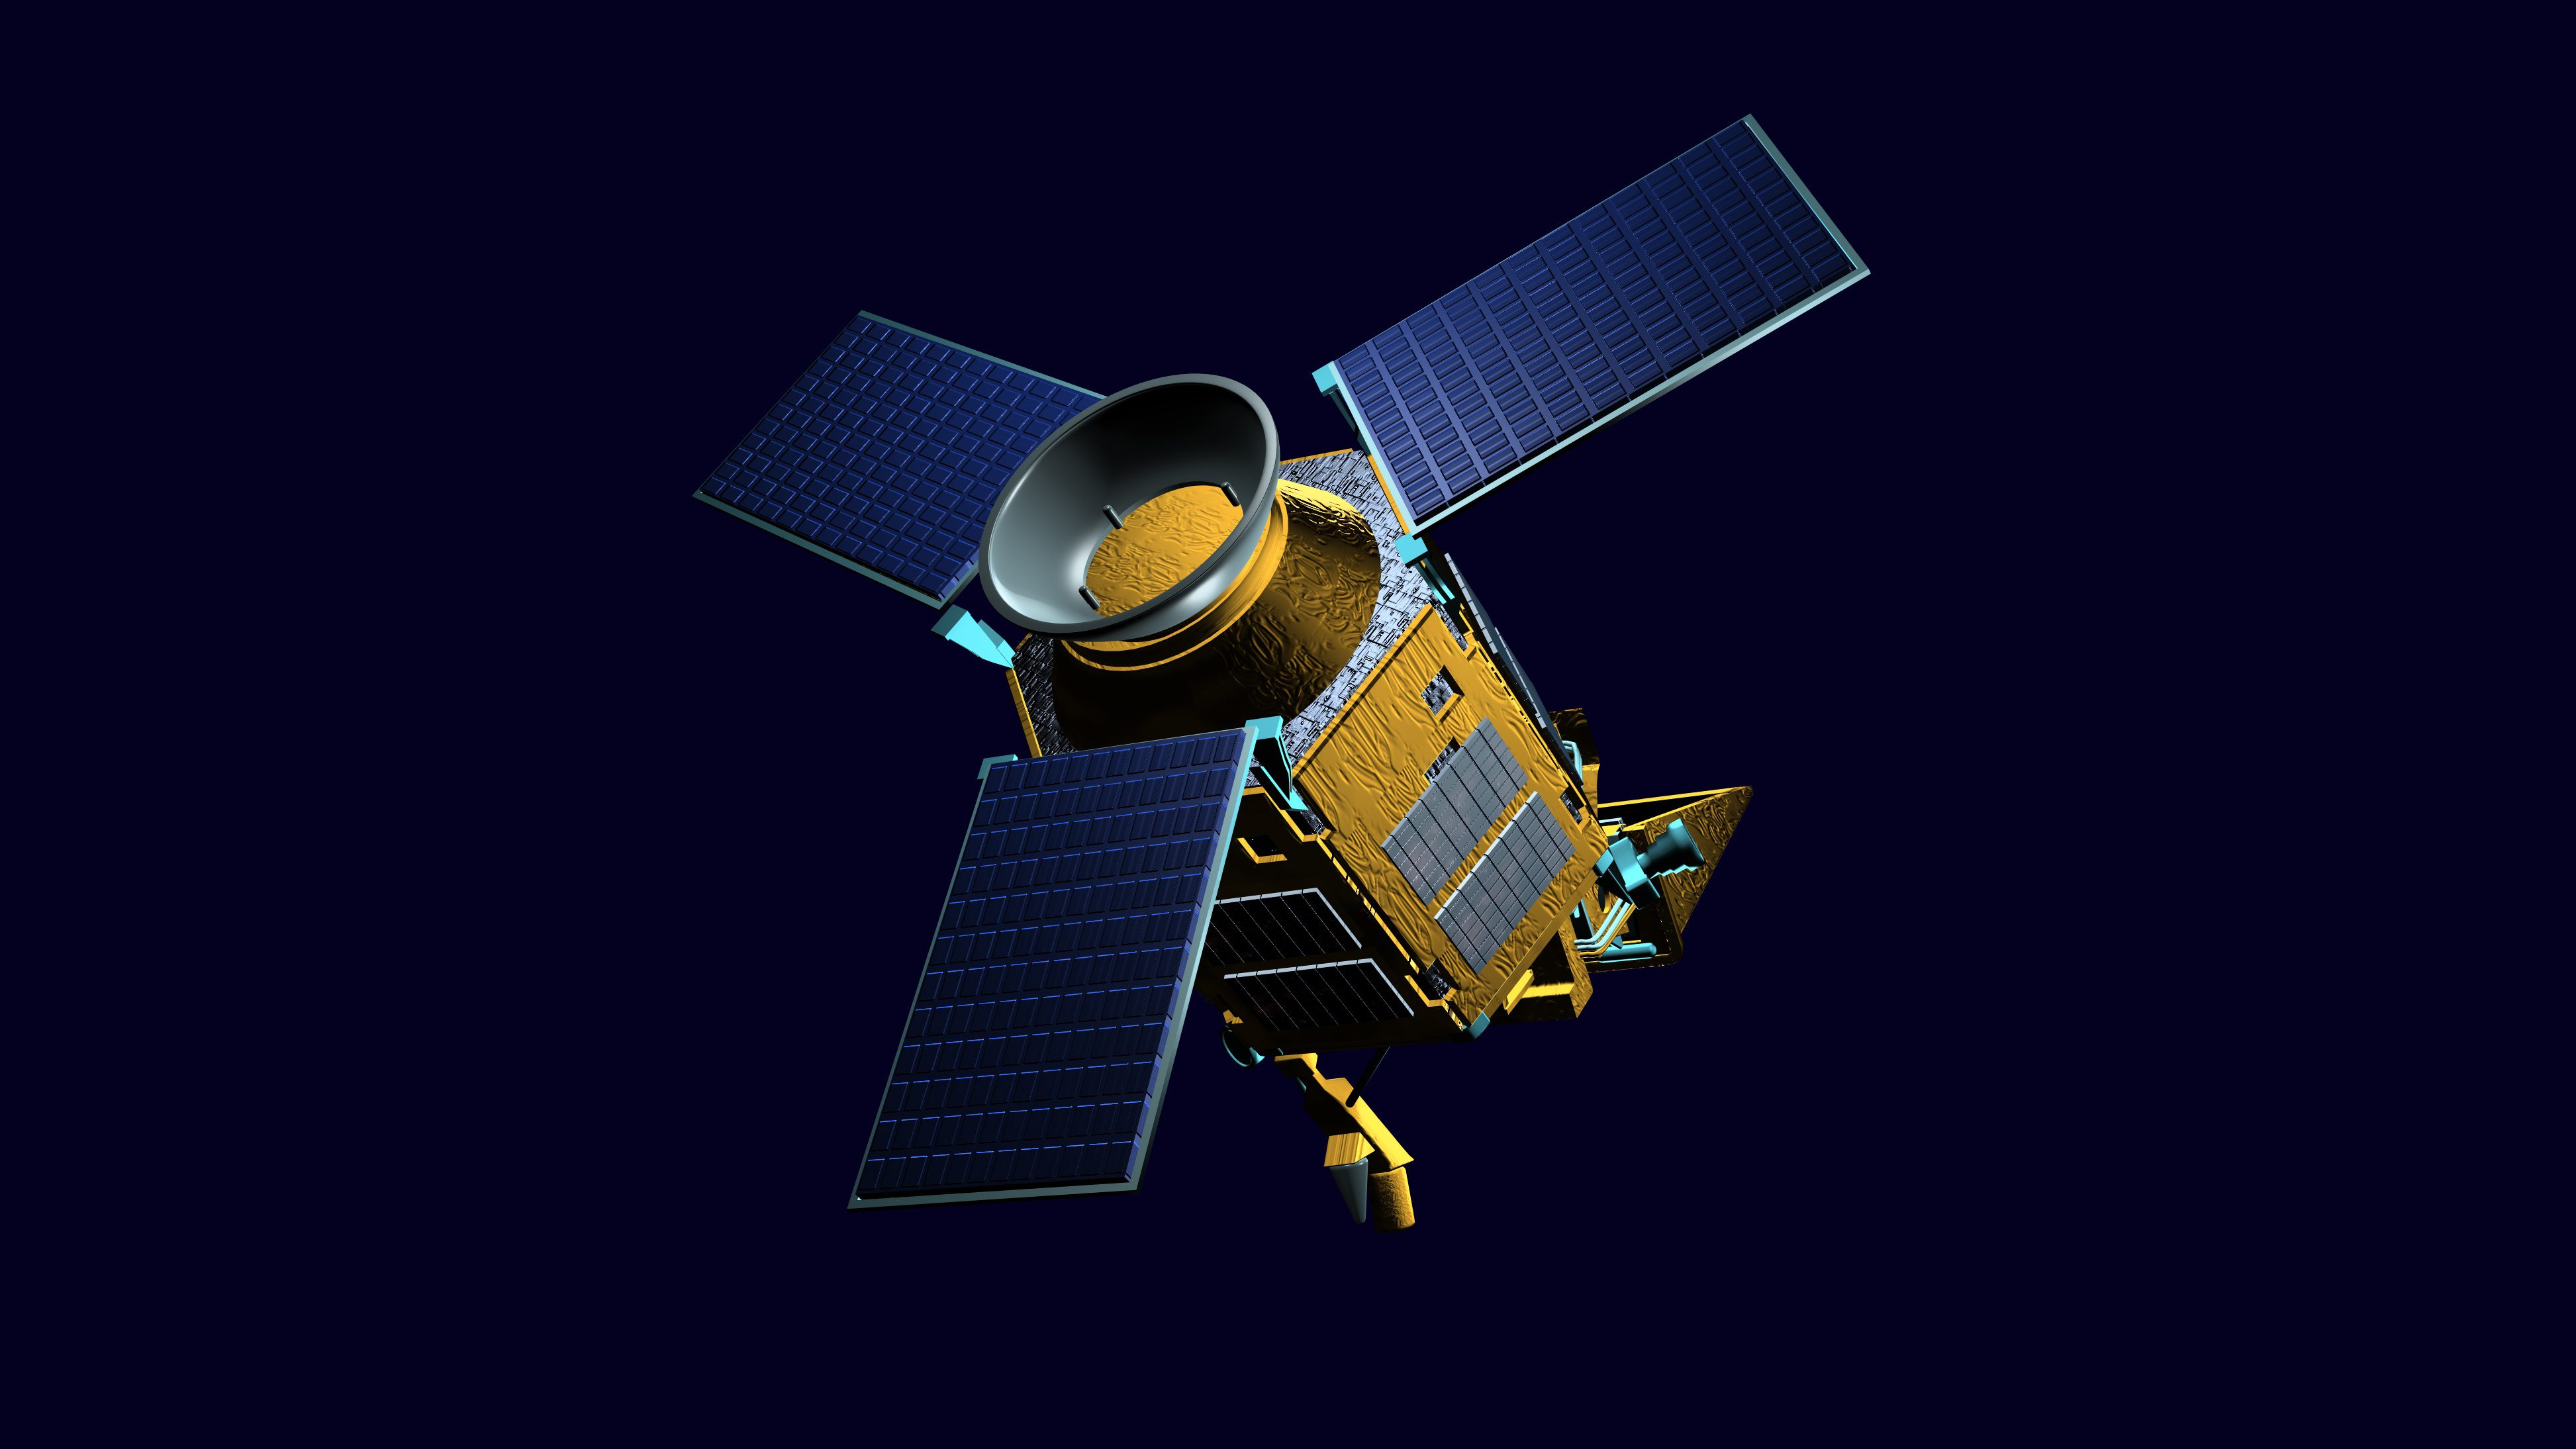 Sofradir space based hyperspectral sensing earth imaging journal the european space agencys sentinel 5 precursor satellite provides ultraviolet visible near infrared sciox Gallery